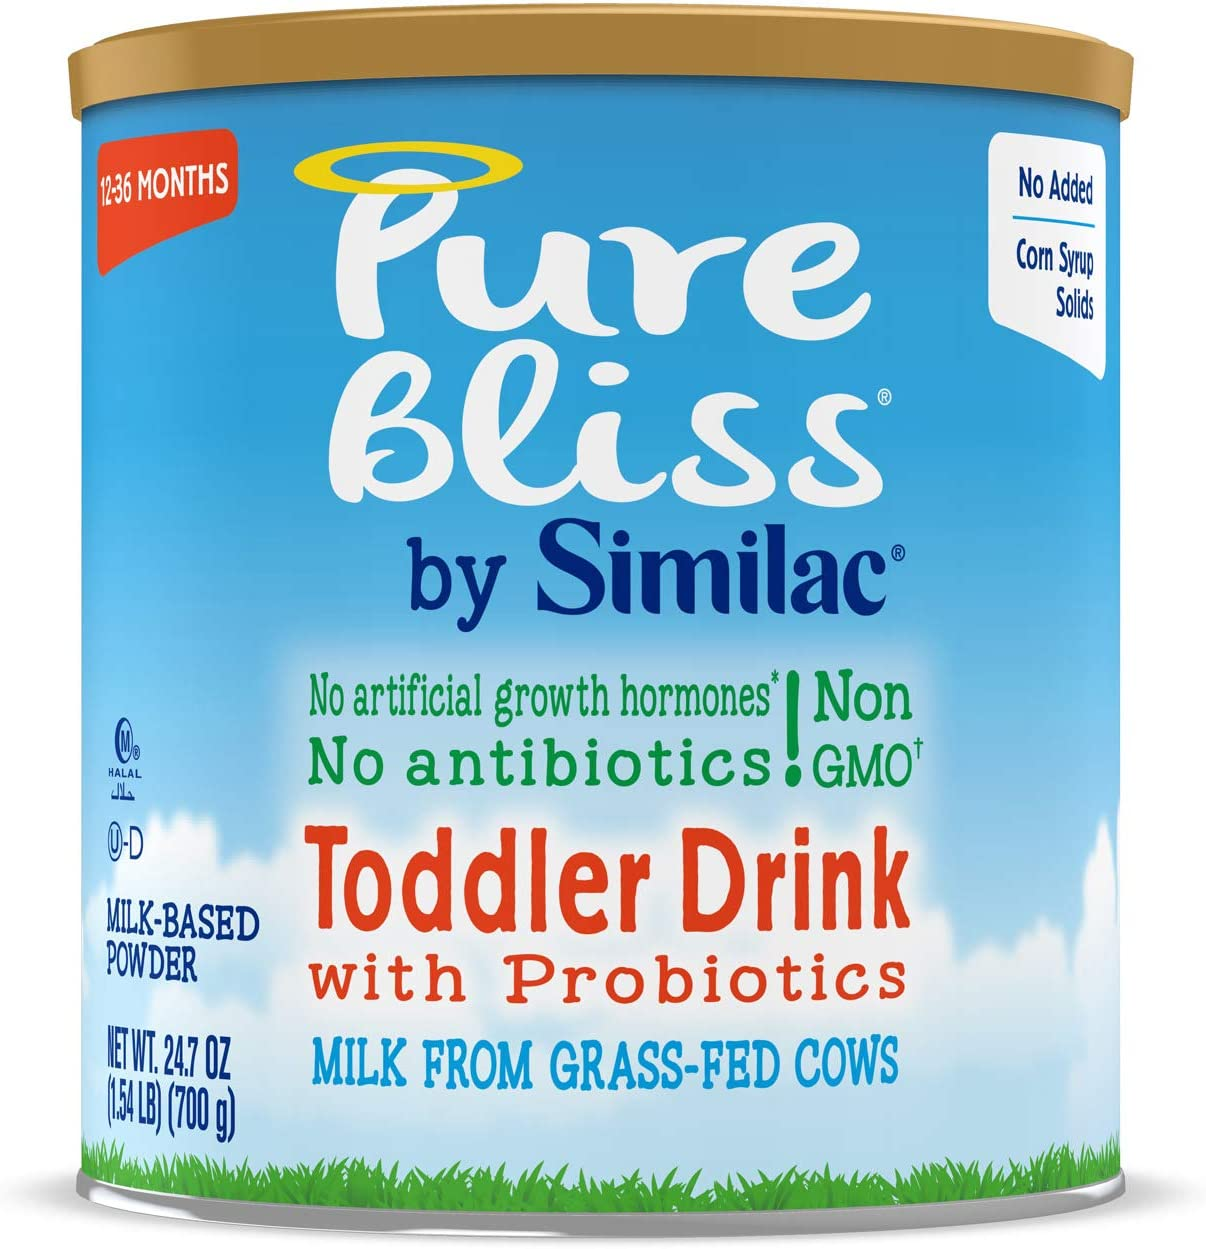 Omaha Mall Pure Outlet SALE Bliss by Similac Toddler Starts Probiotics with Drink With